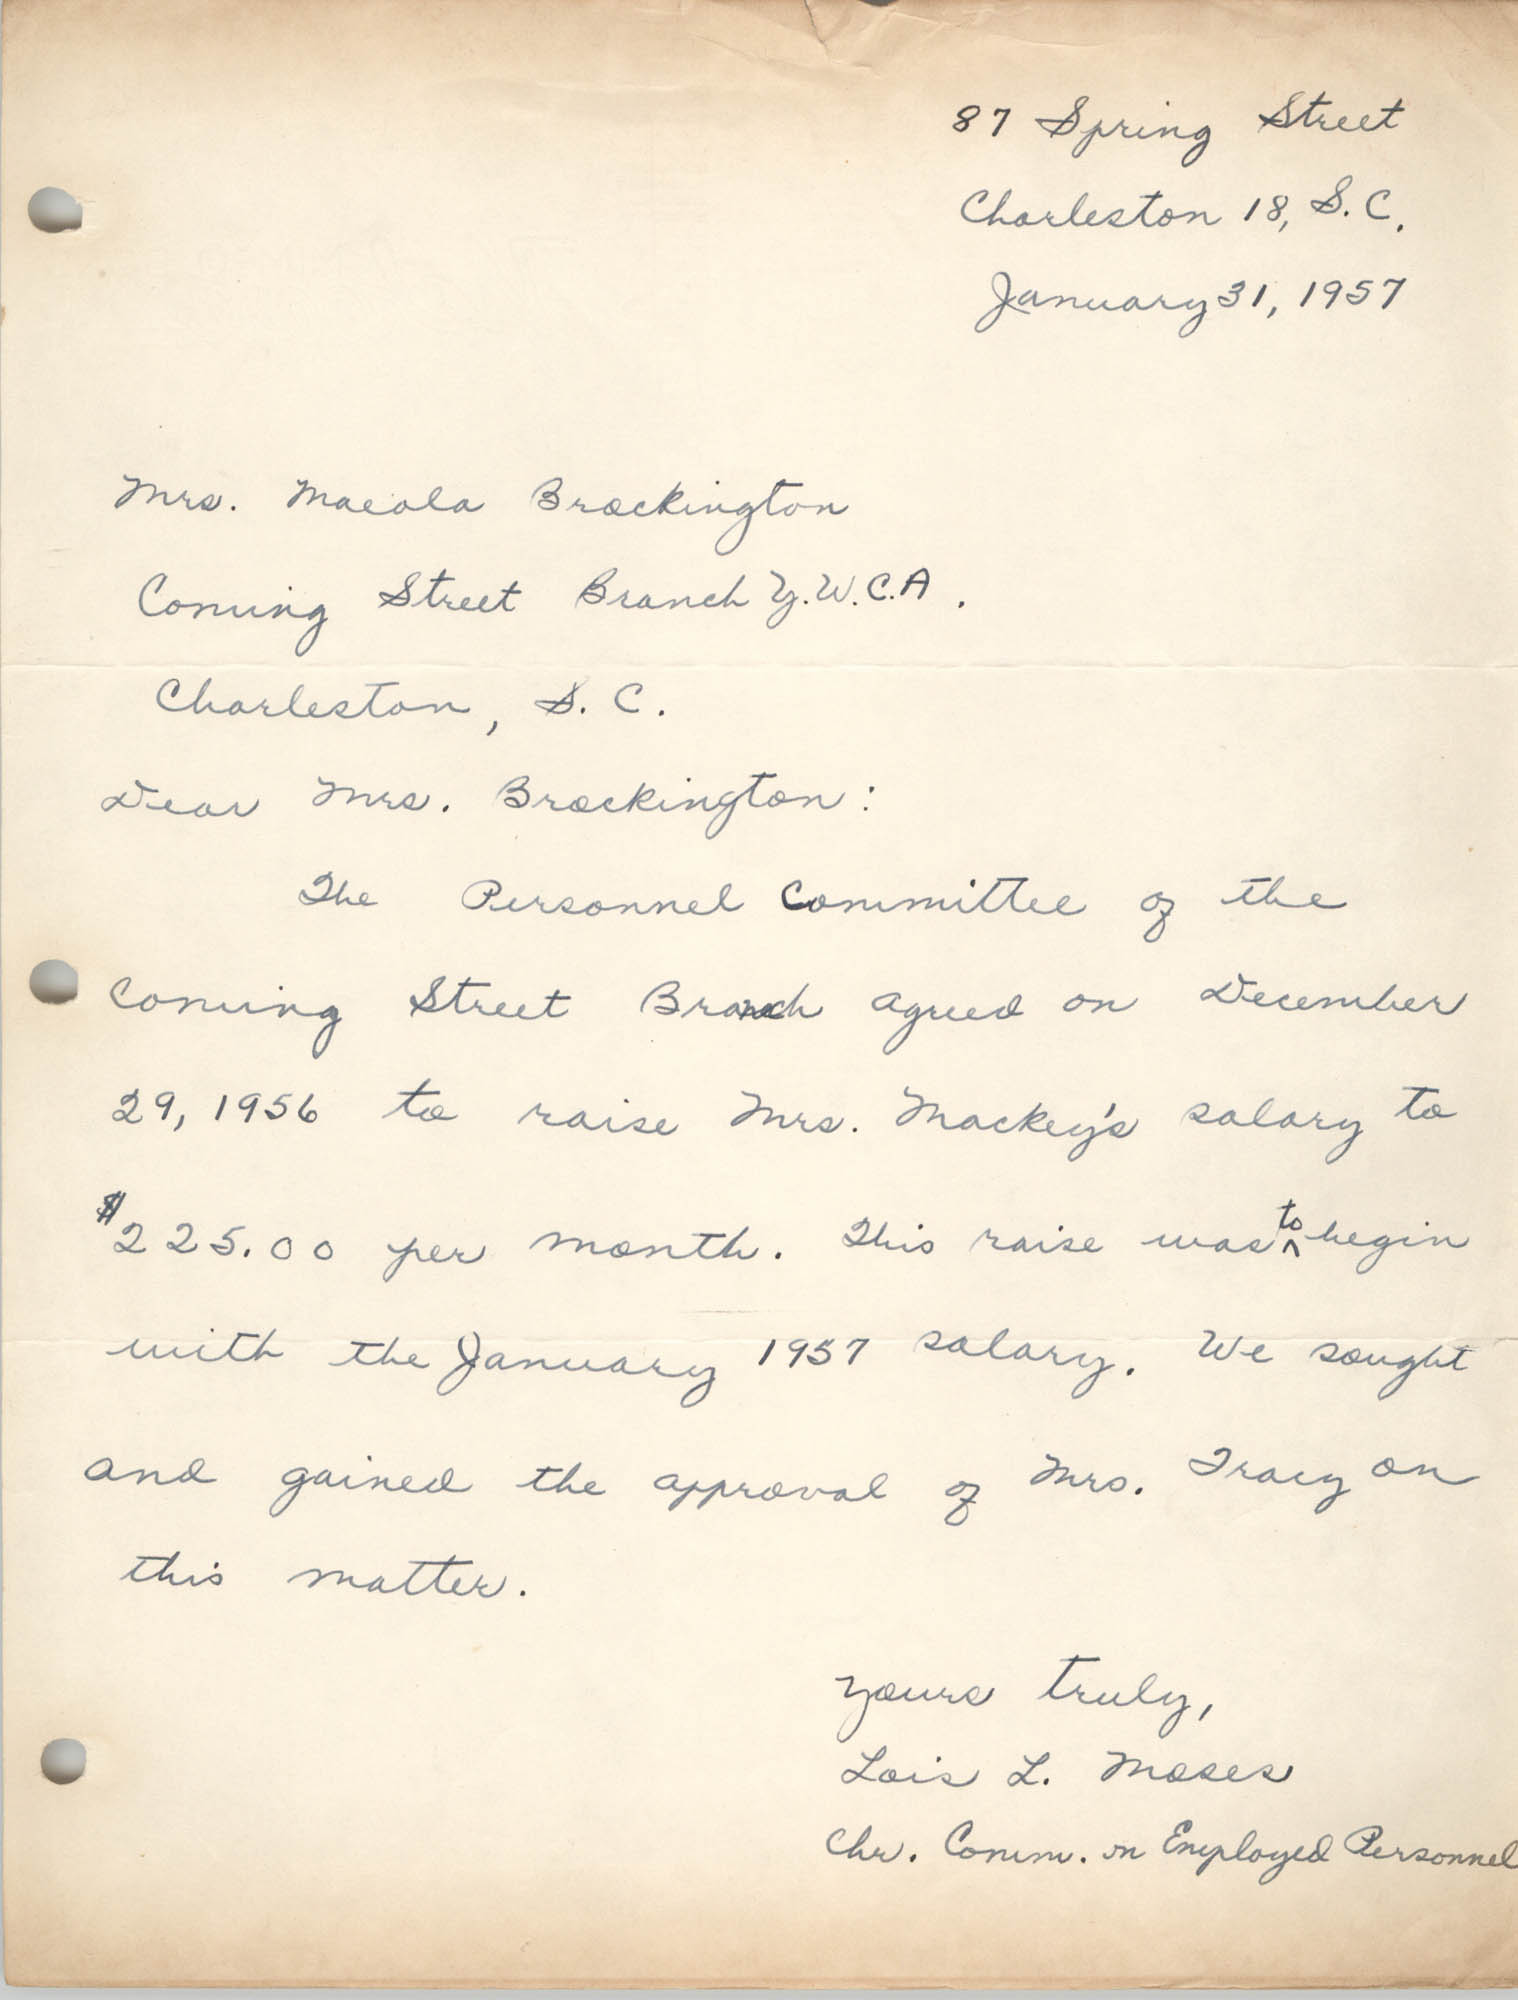 Letter from Lois L. Moses to Maeola Brockington, January 31, 1957